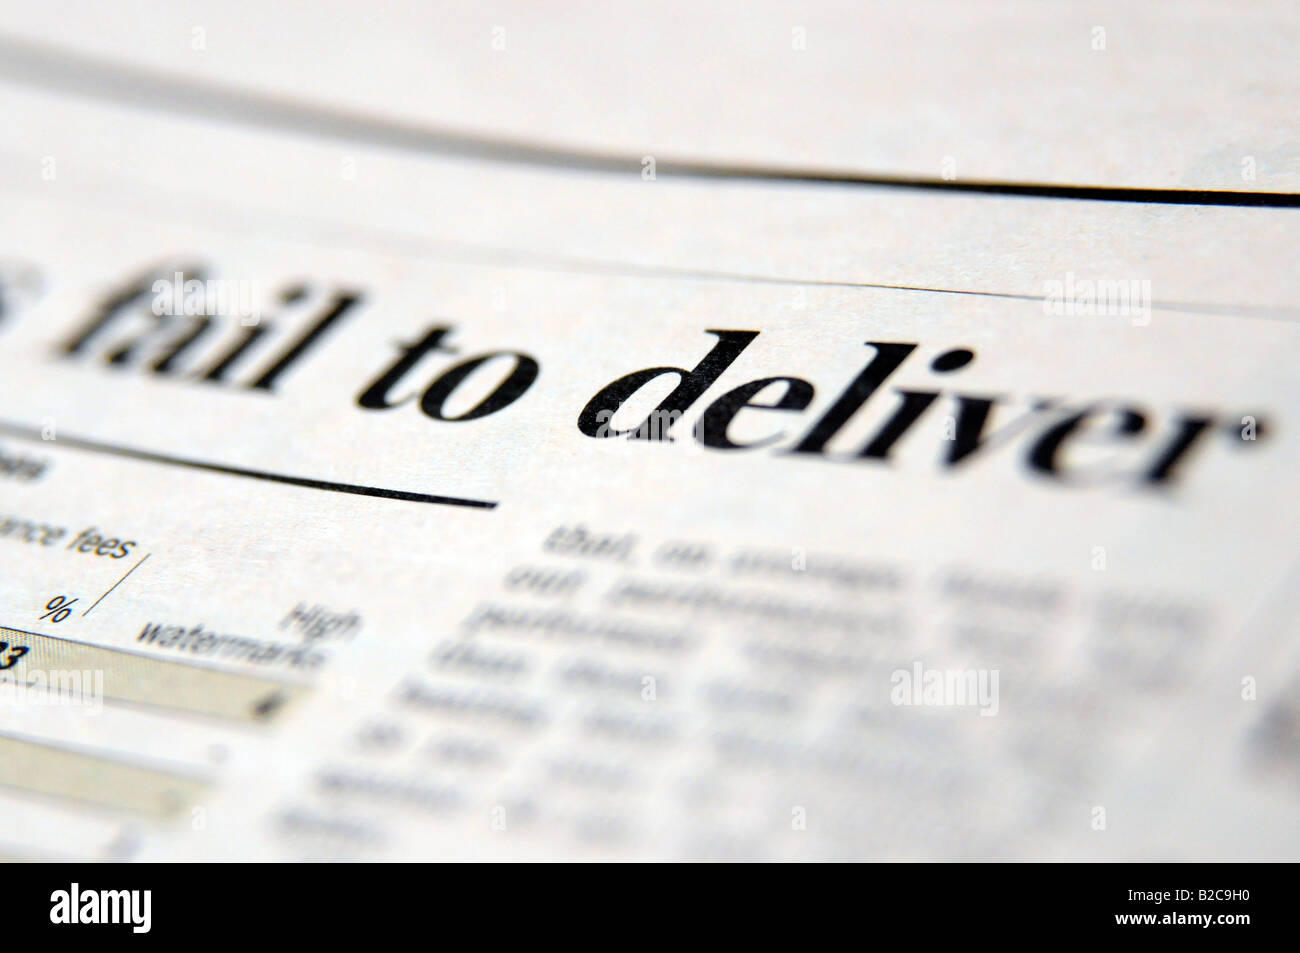 Photograph of newspaper headline about the credit crunch and economic downturn and recession failing to deliver - Stock Image